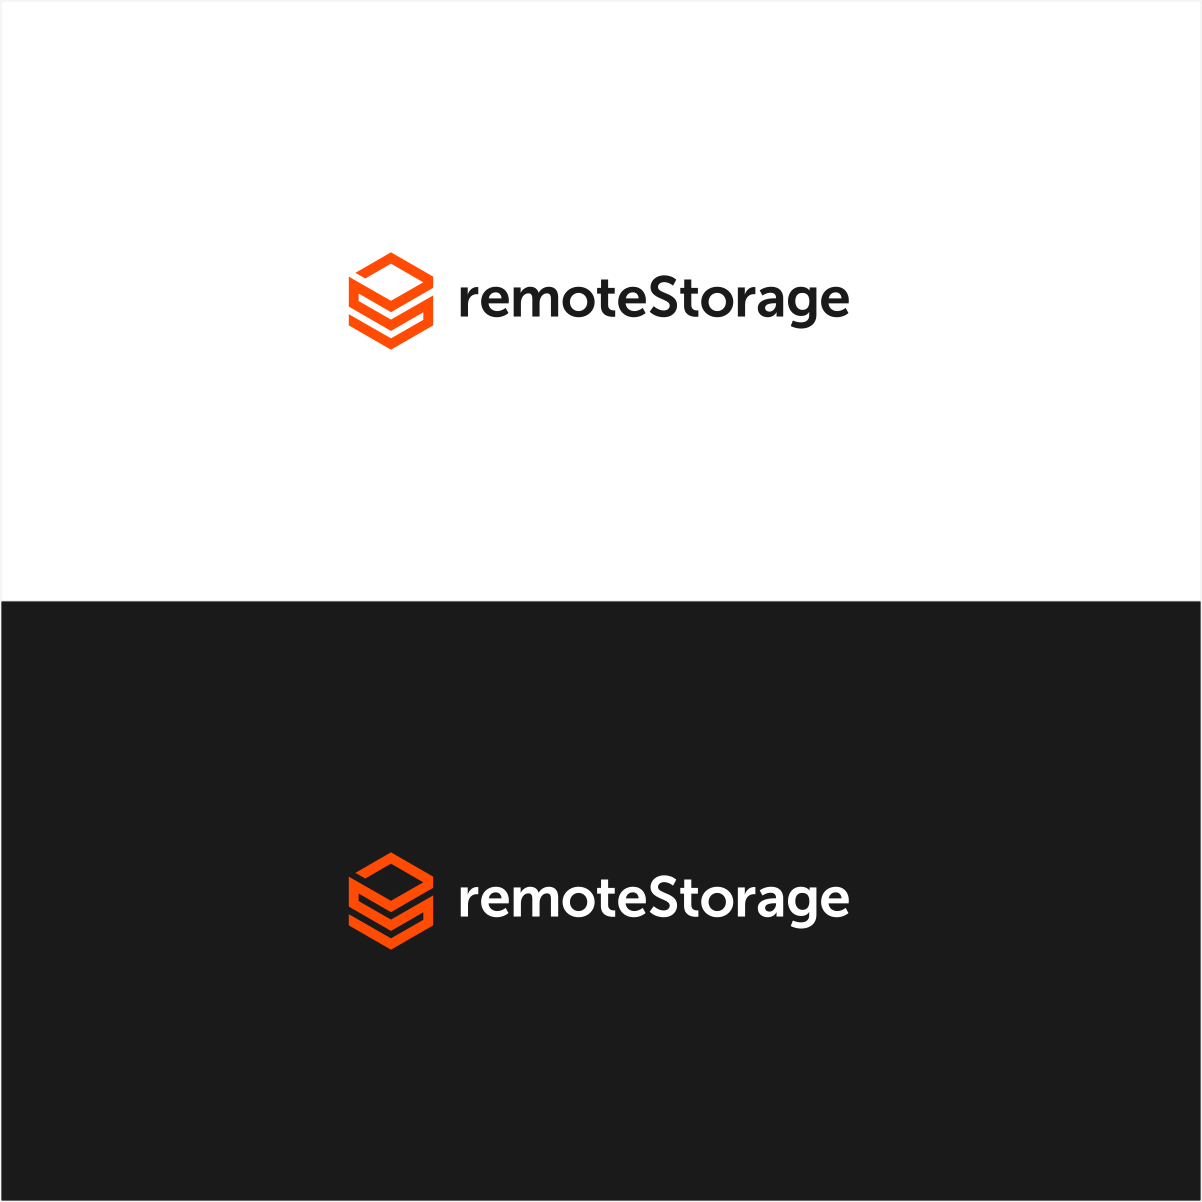 remotestorage_type3